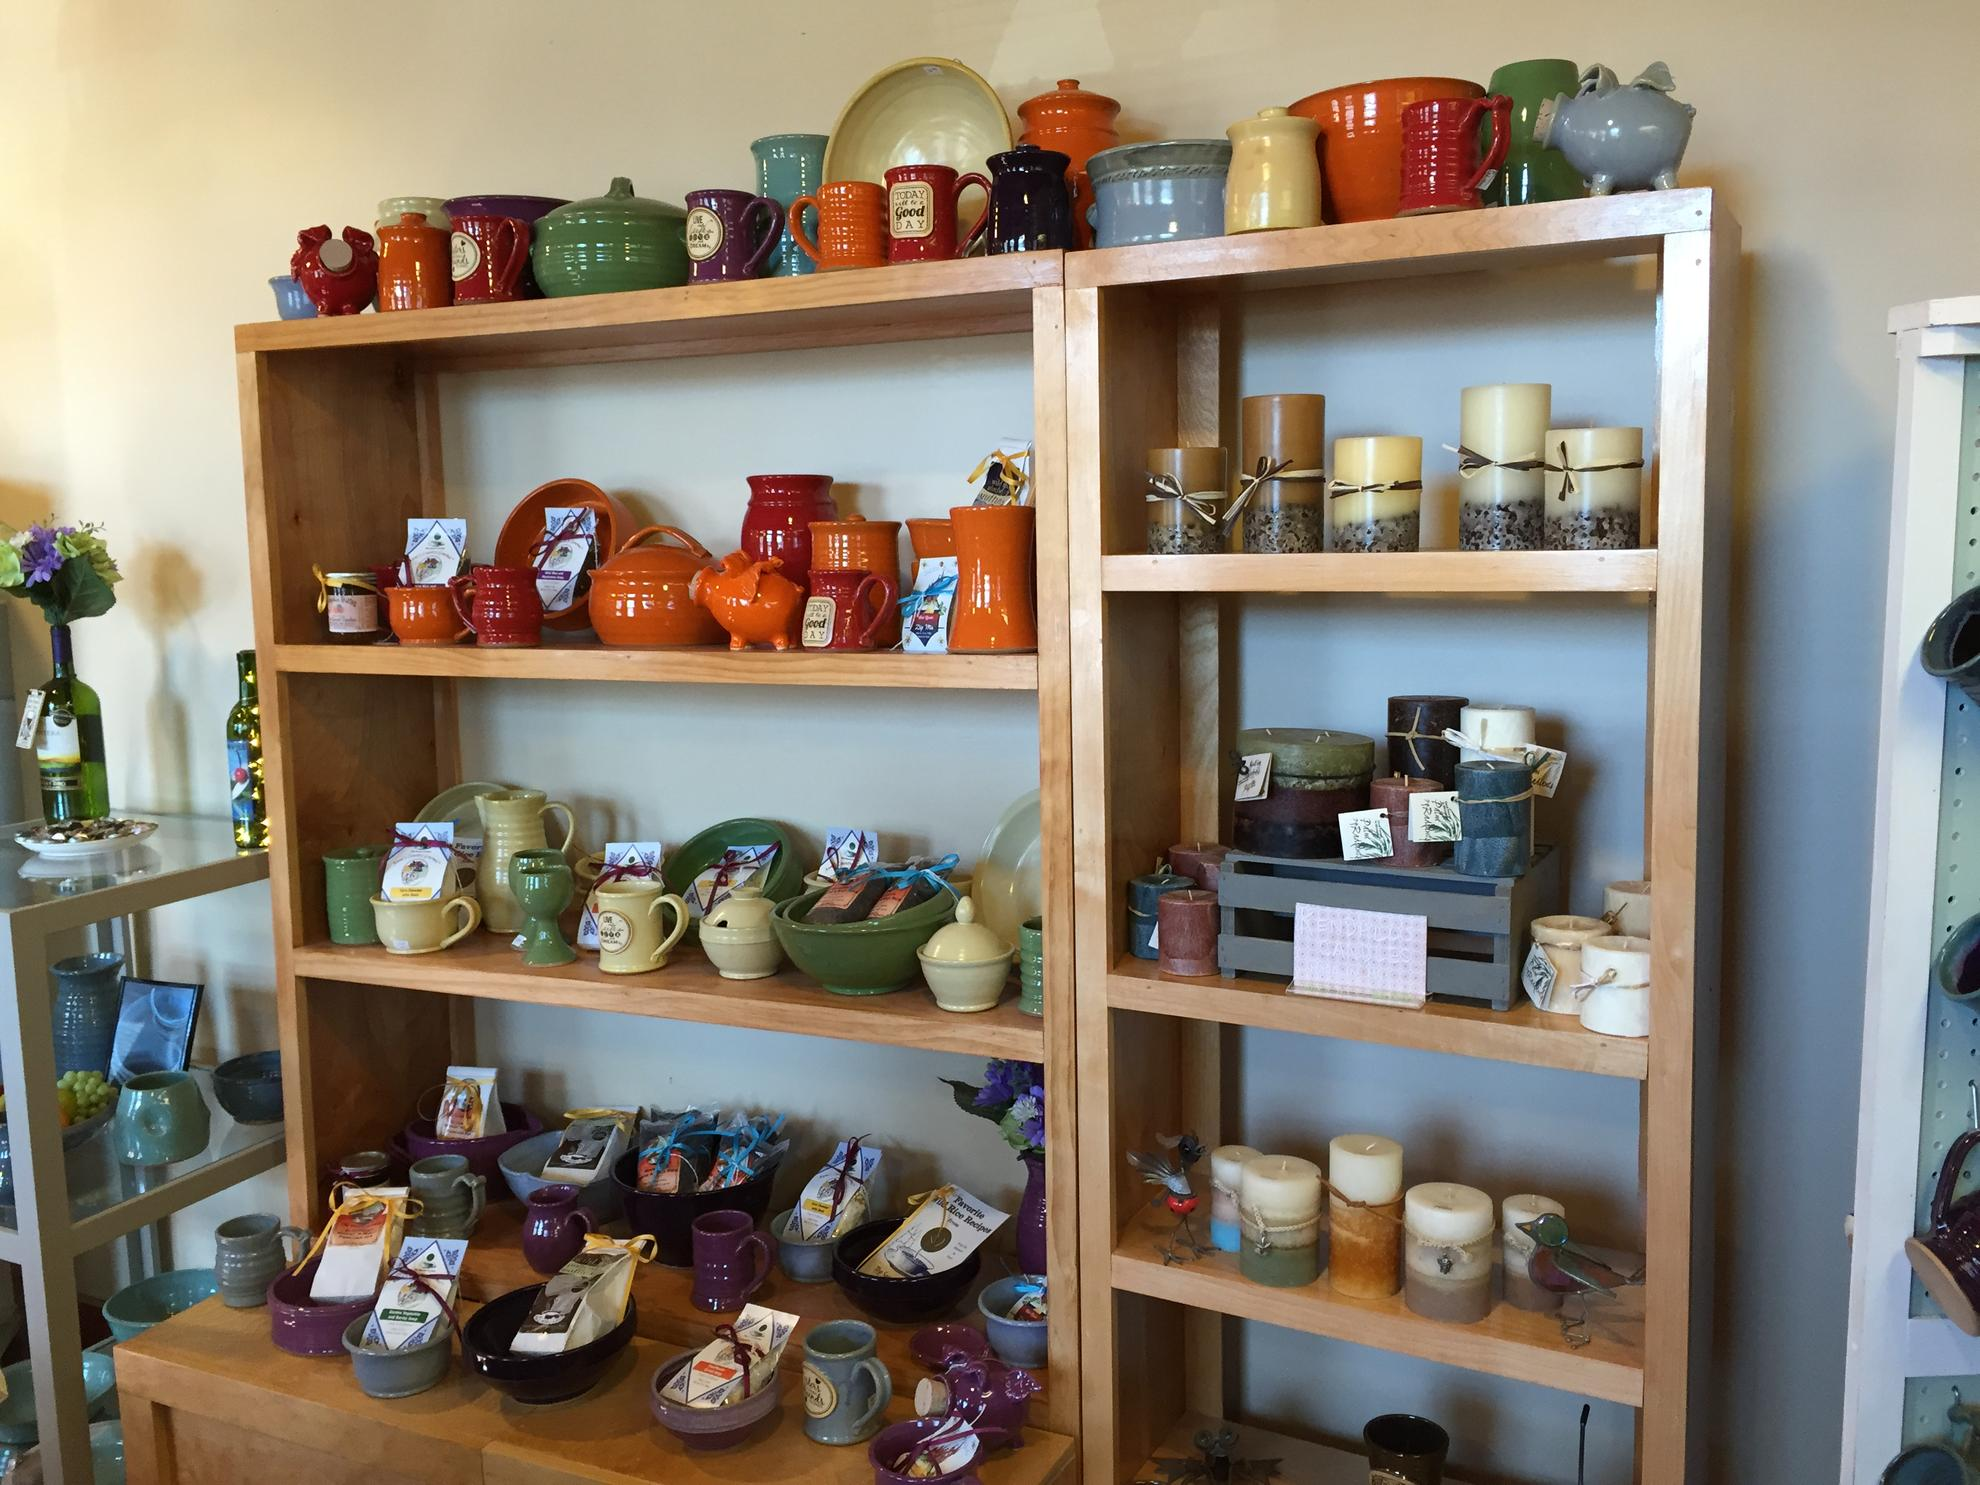 3-10-15Giftware